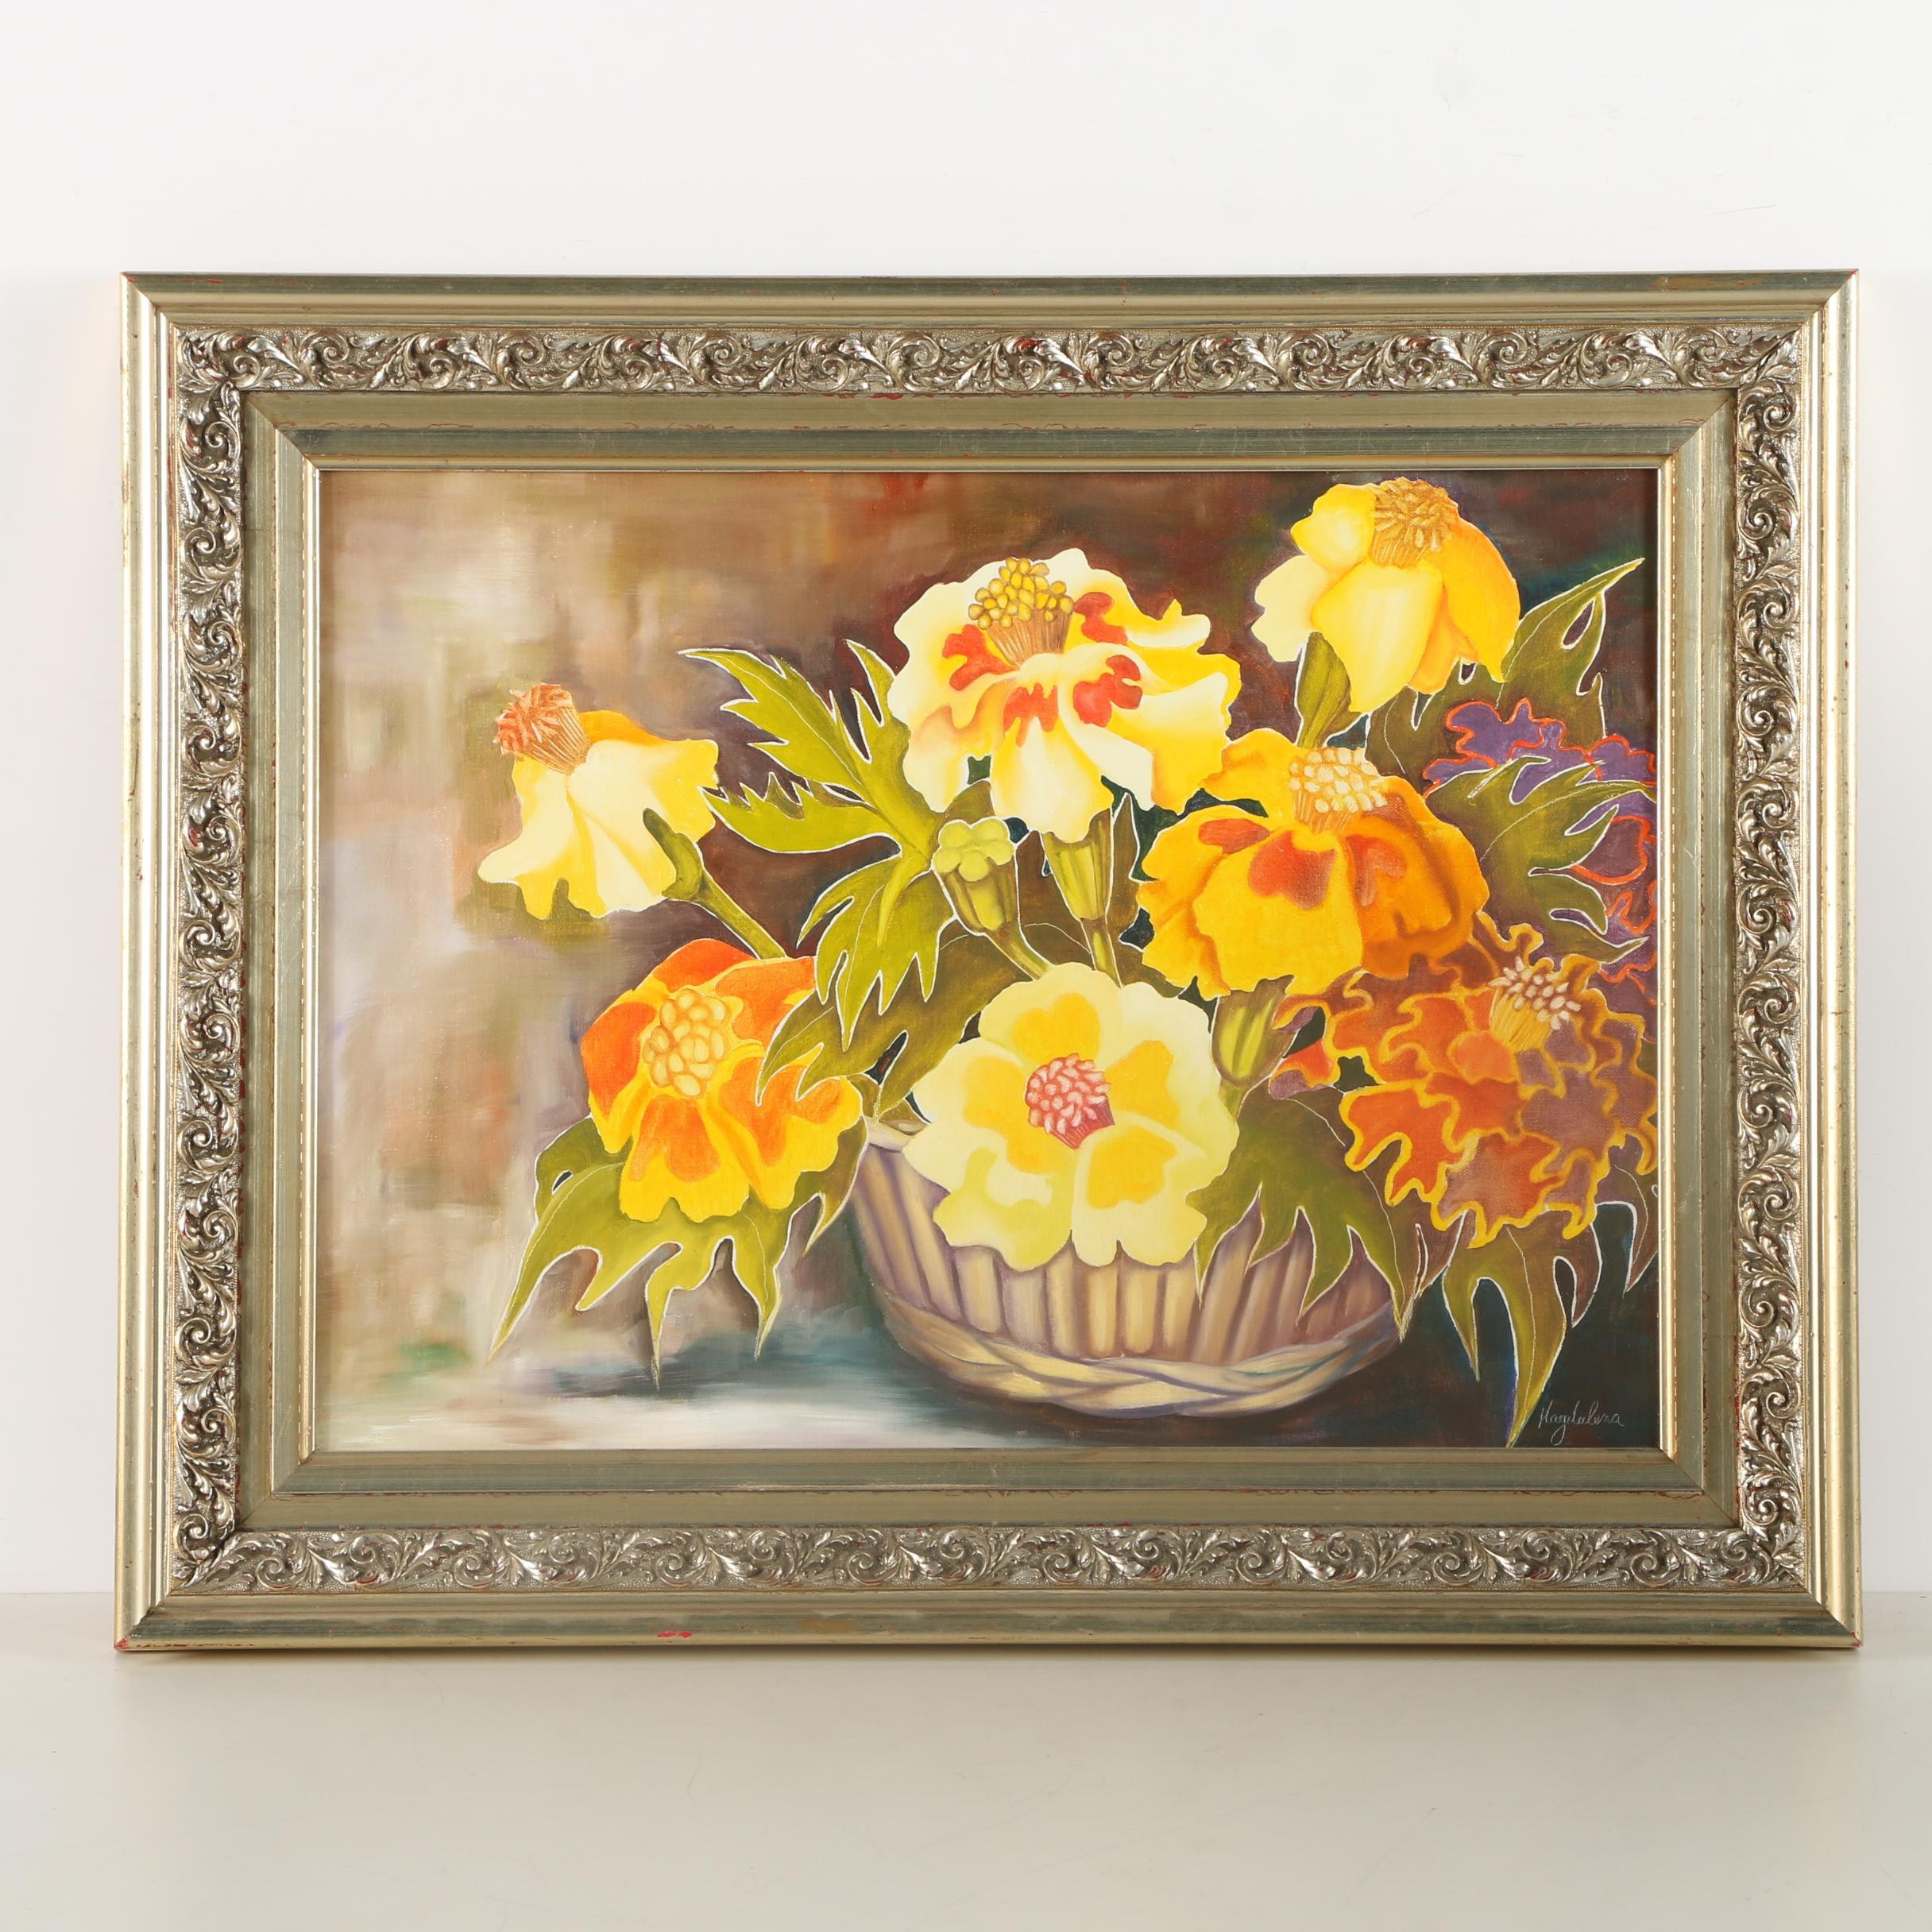 Magdalena Oil Painting on Canvas of Floral Still Life